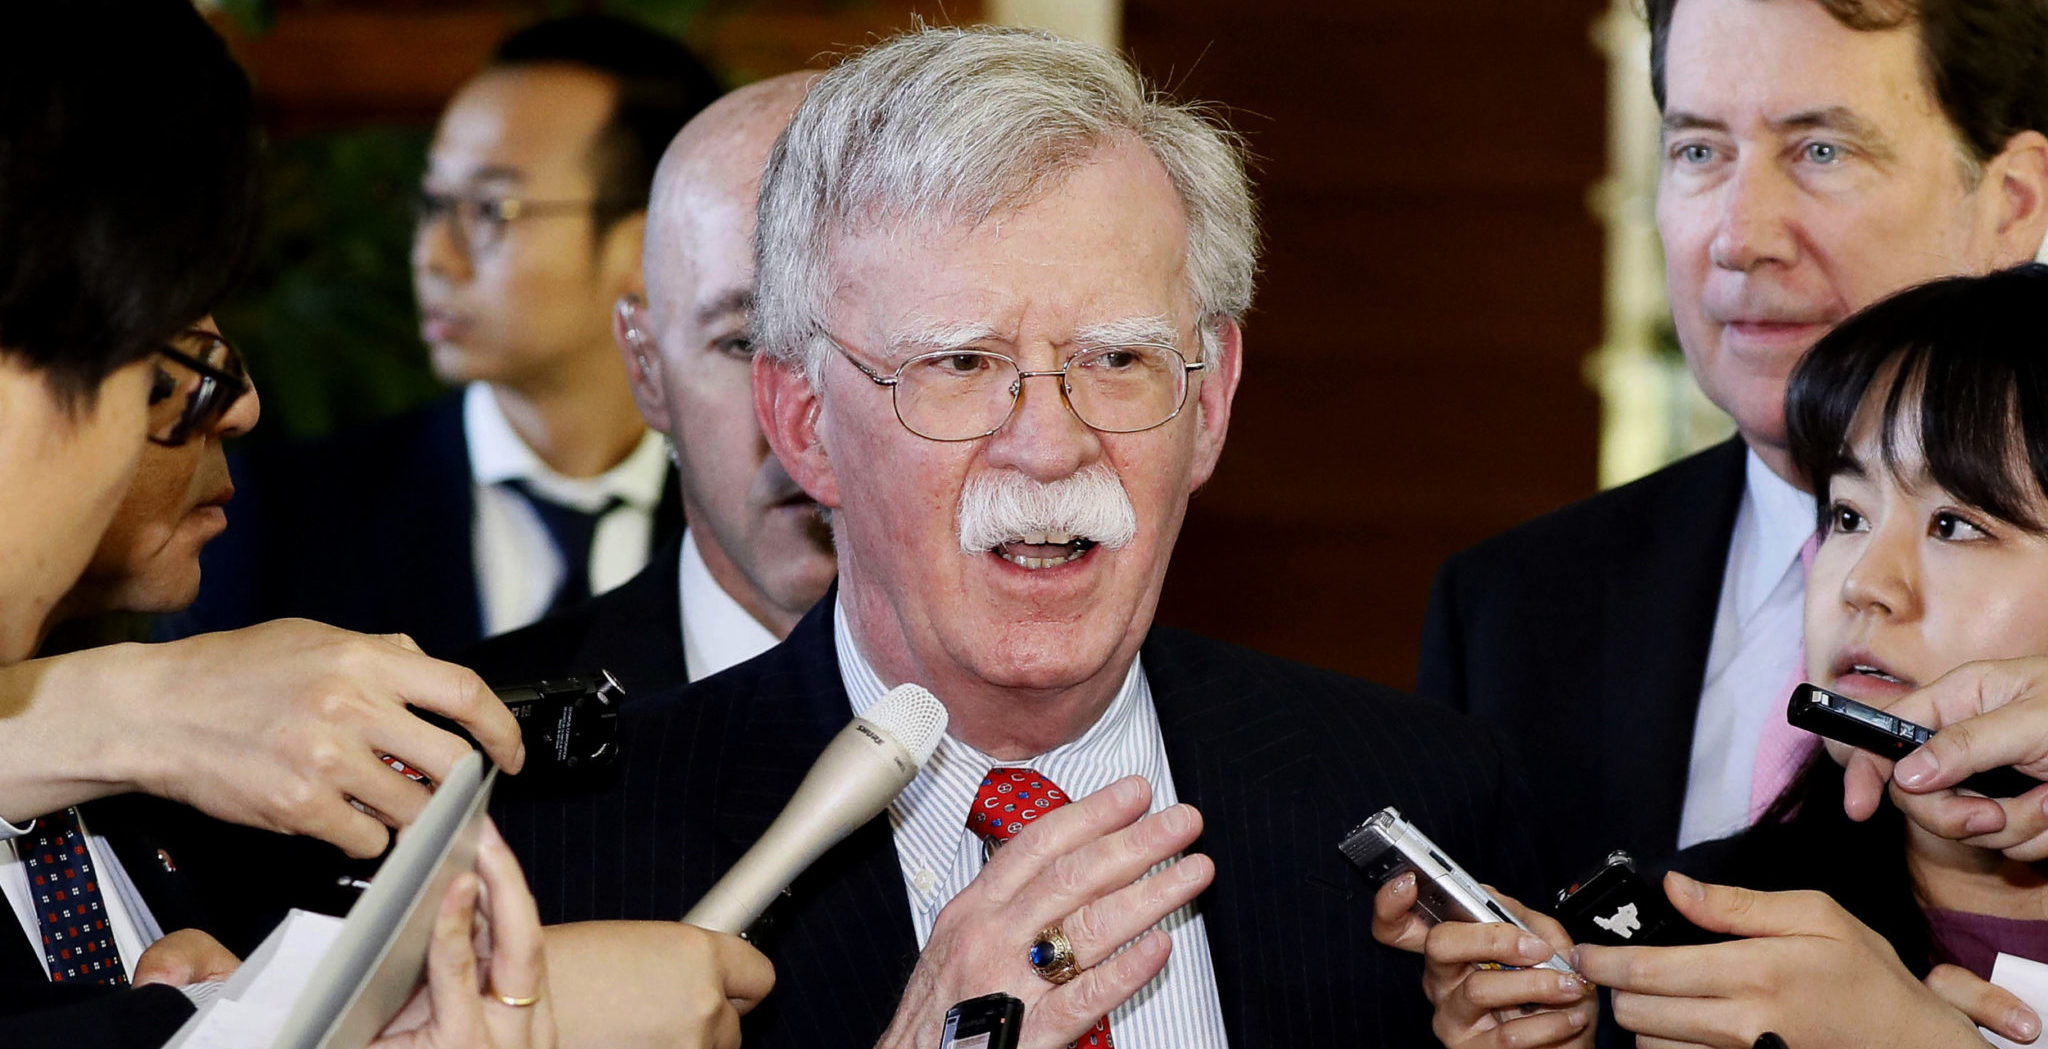 North Korea Calls Bolton 'Warmonger' Over Missile Comment